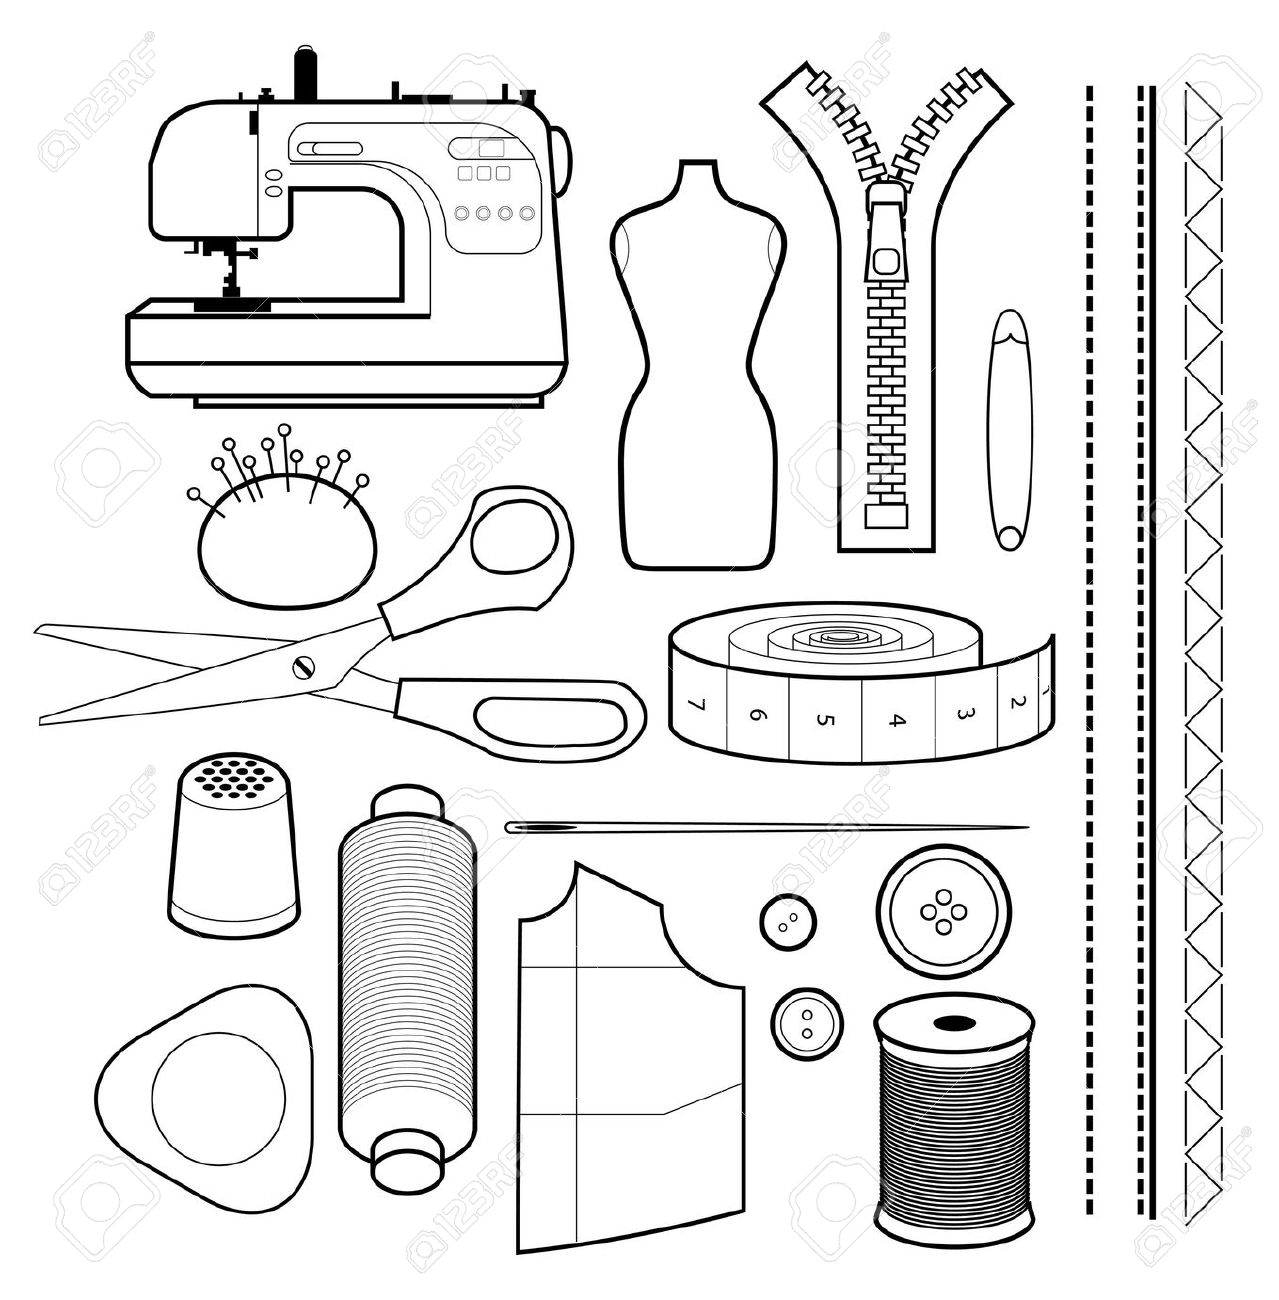 sewing equipment clipart #4